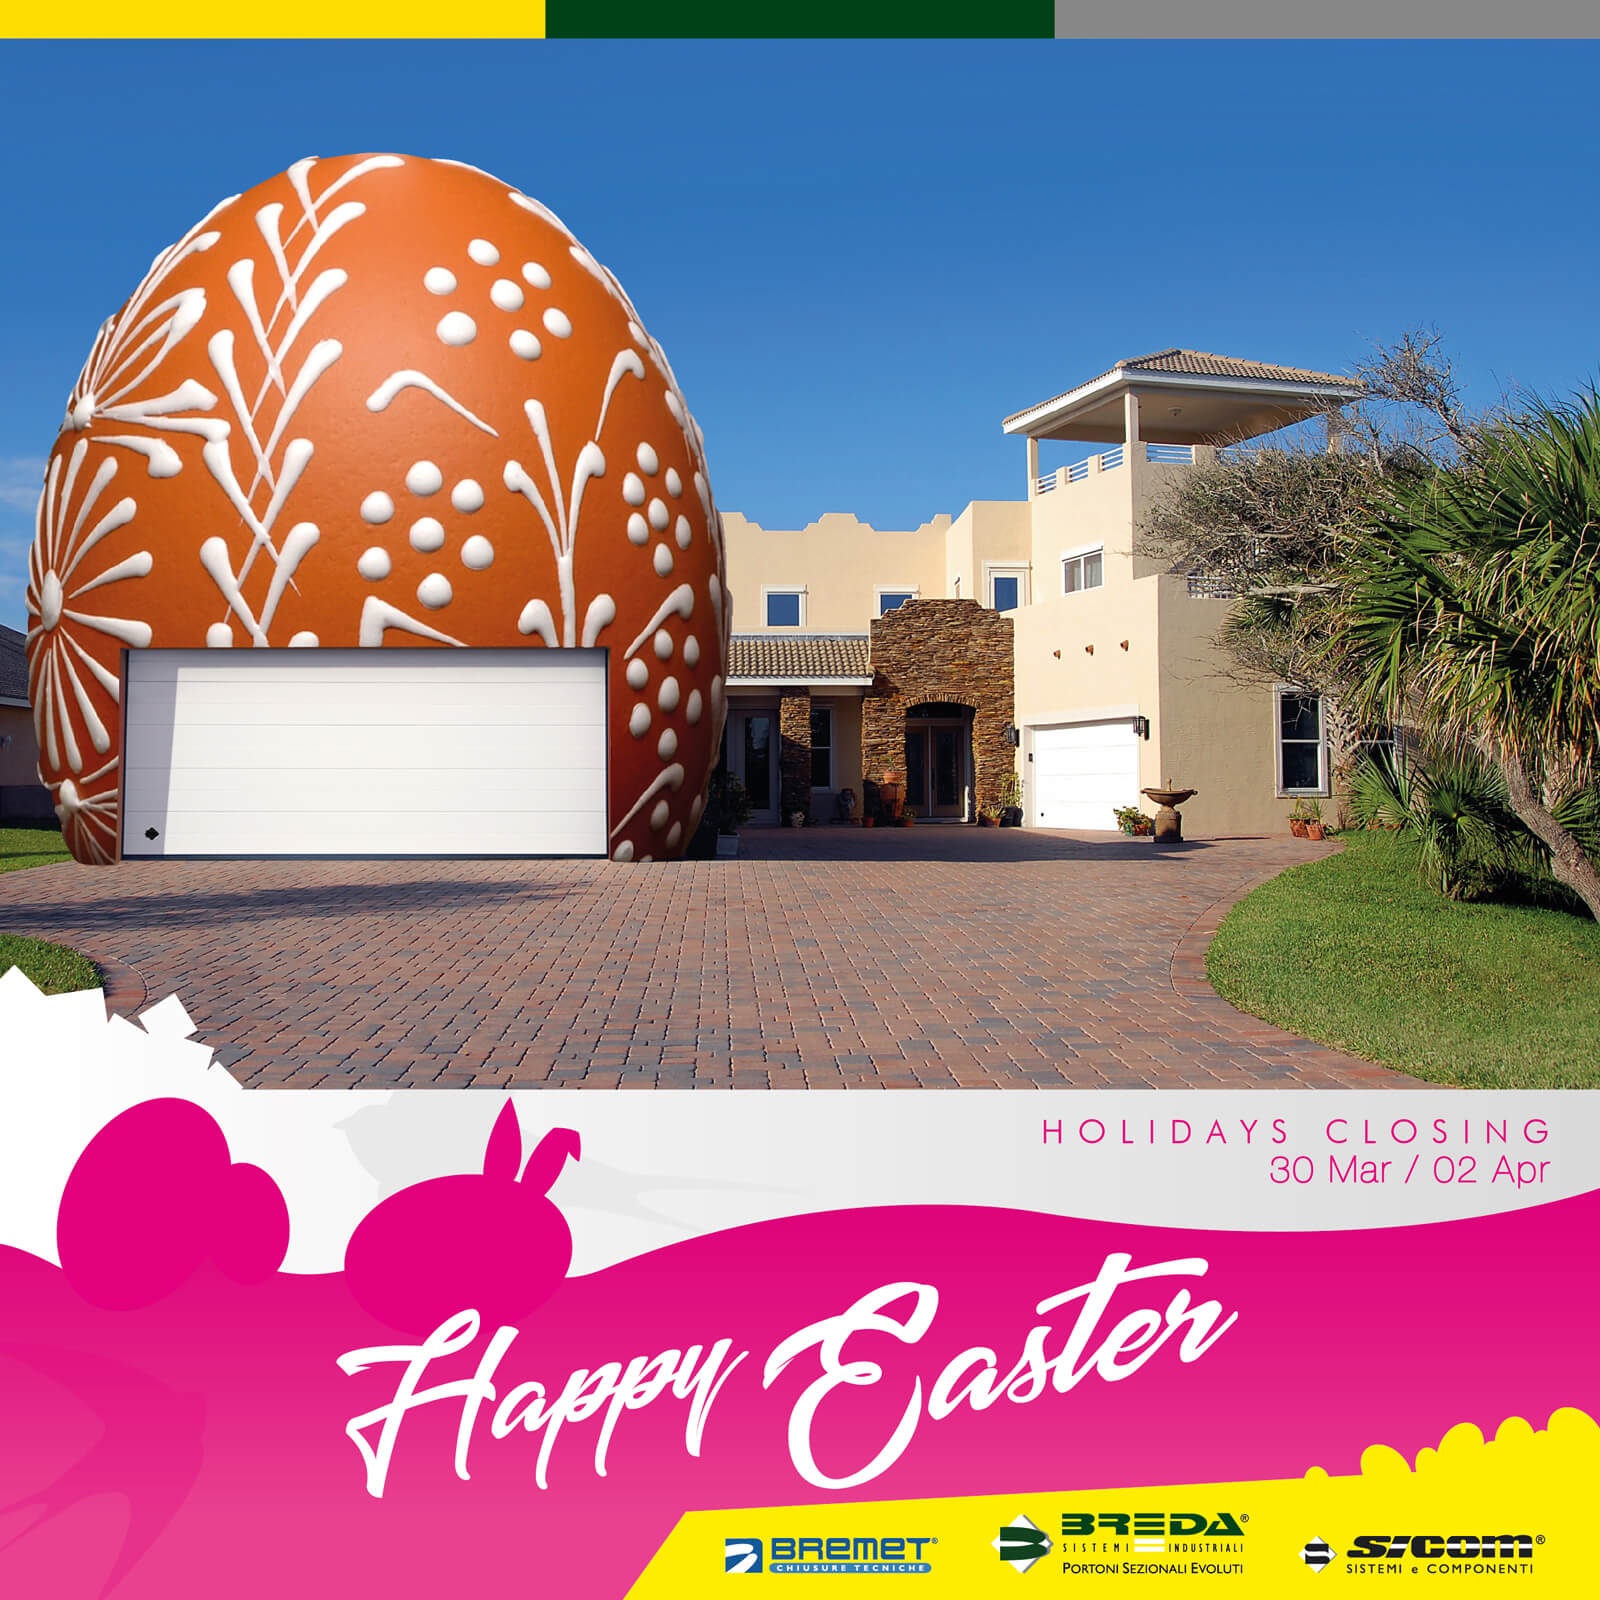 Happy Easter from Breda